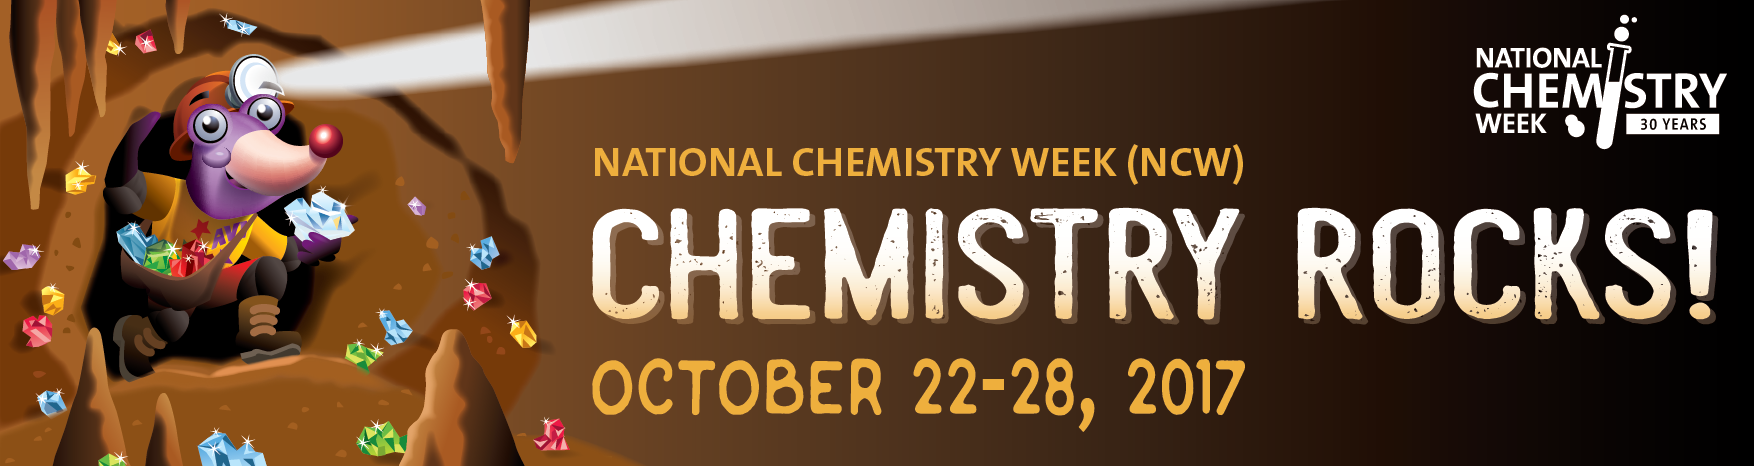 "The National Chemistry Week theme is ""Solving Mysteries Through Chemistry"" celebrated from October 16-22, 2016."